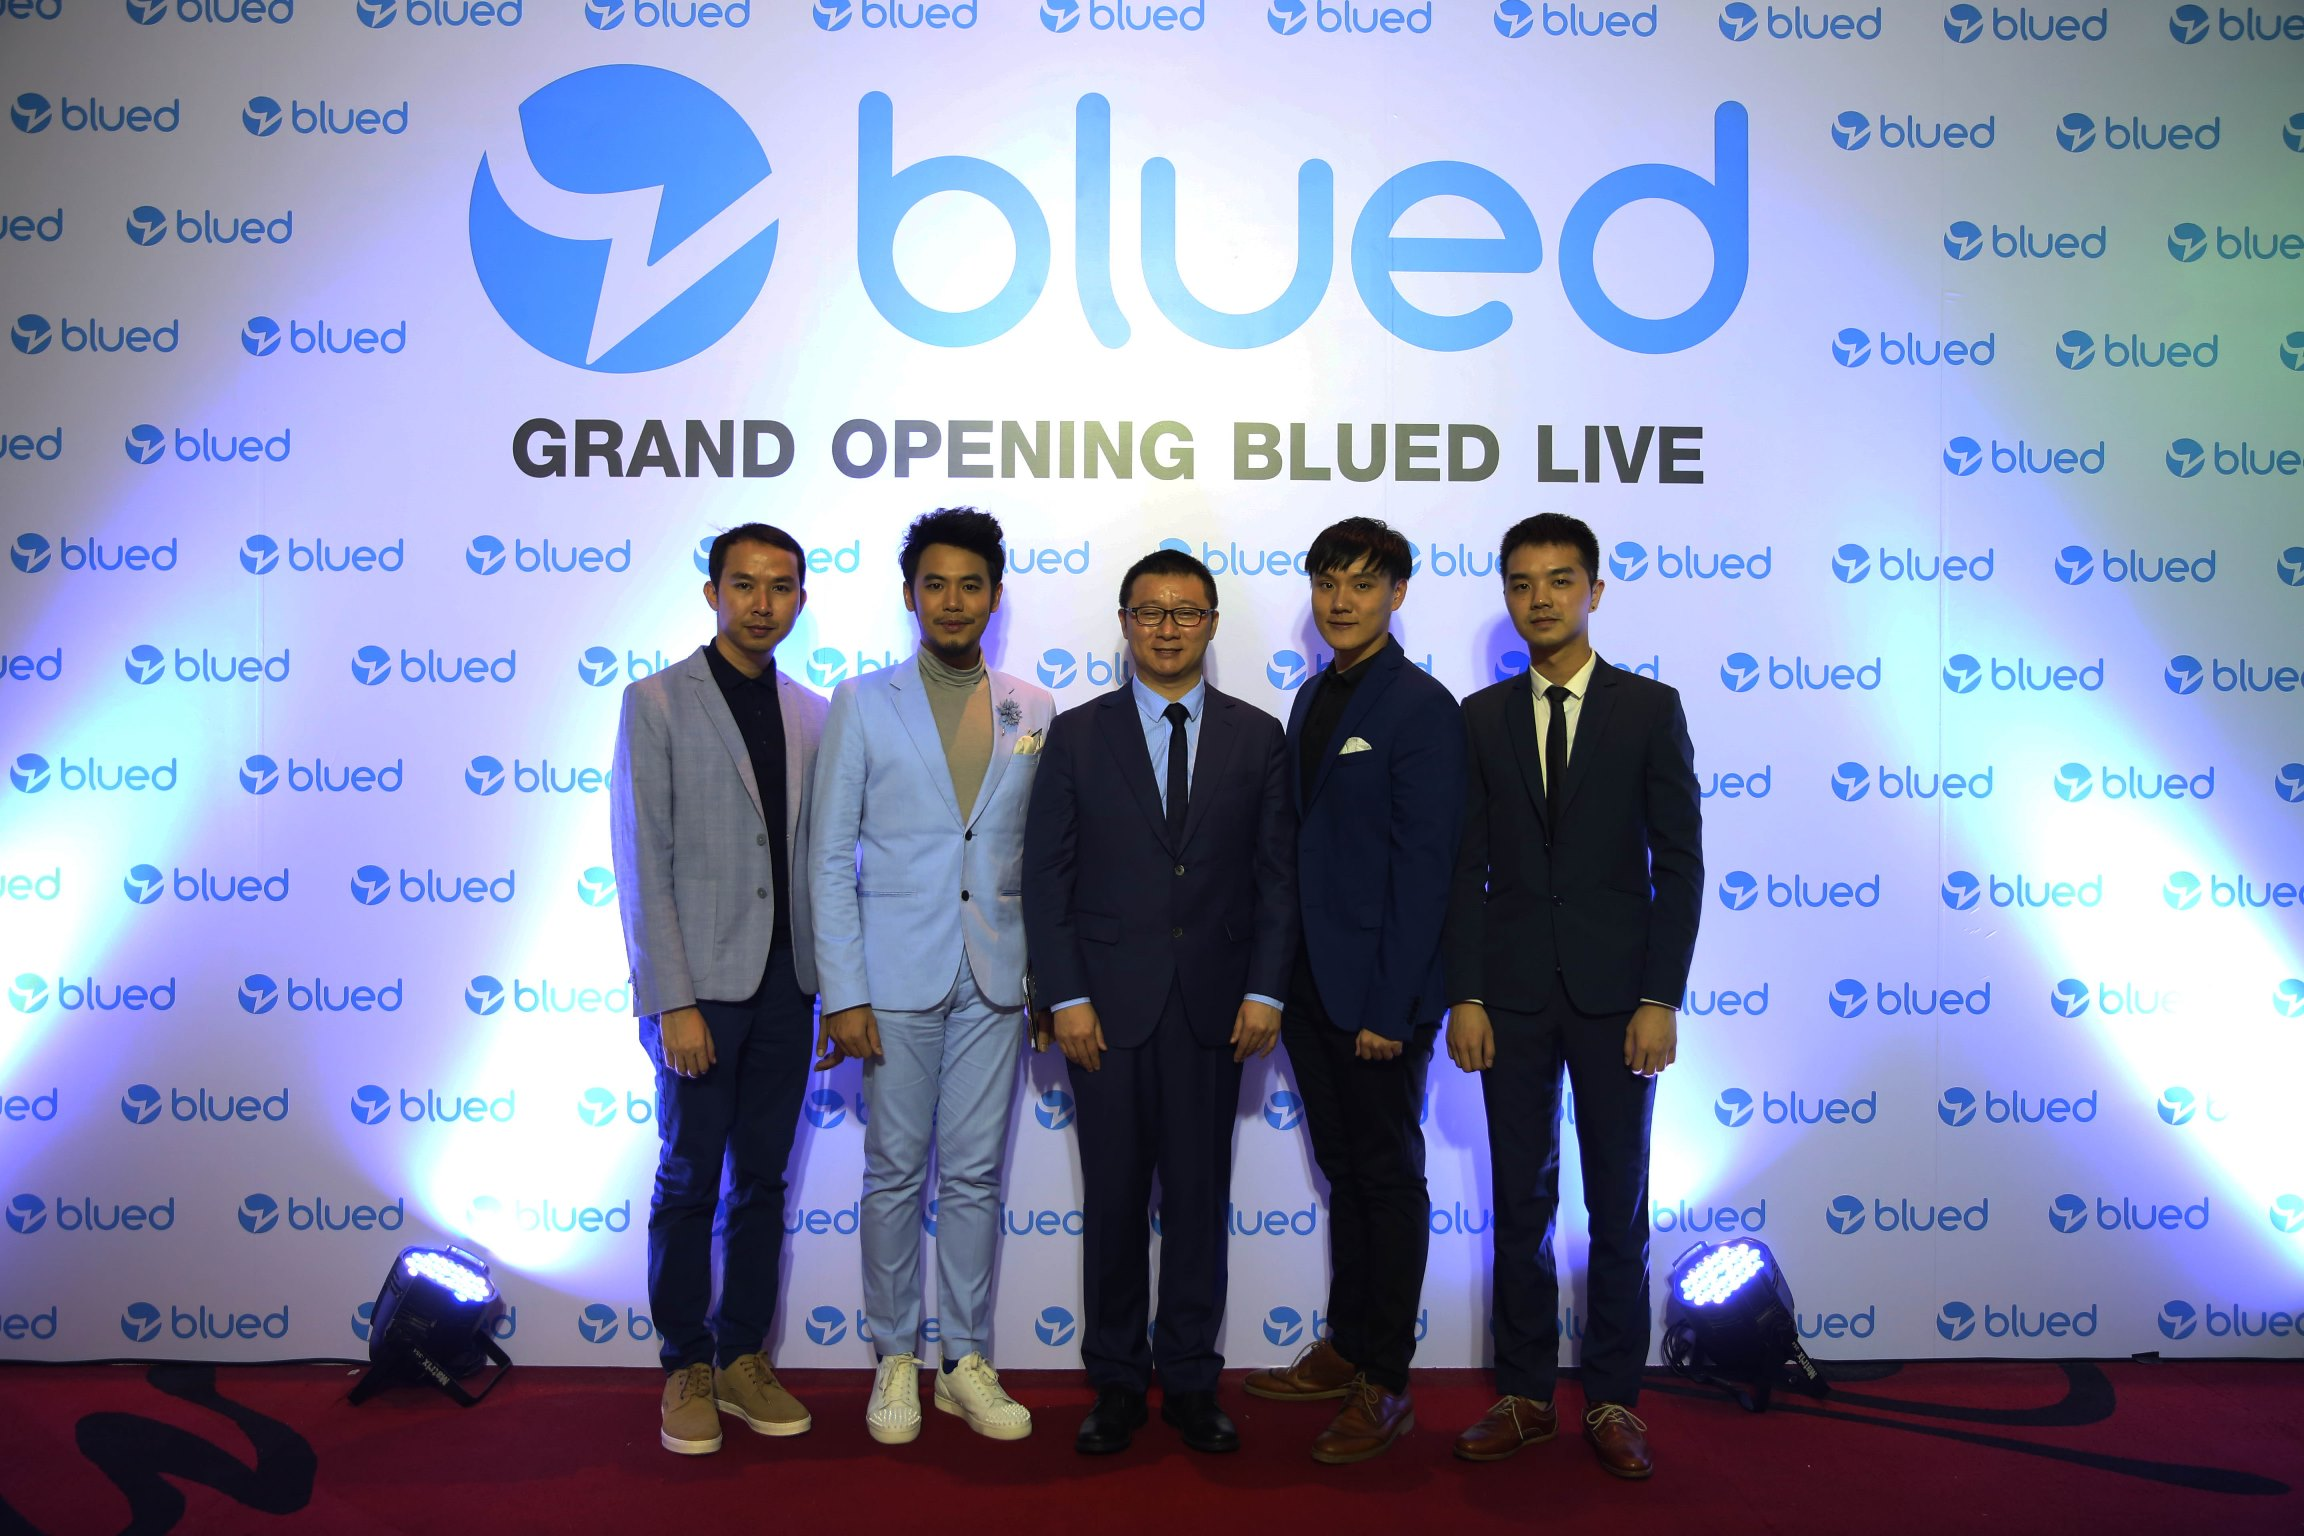 Chinese gay dating app Blued raises eight-digit RMB funding from The Beijing News